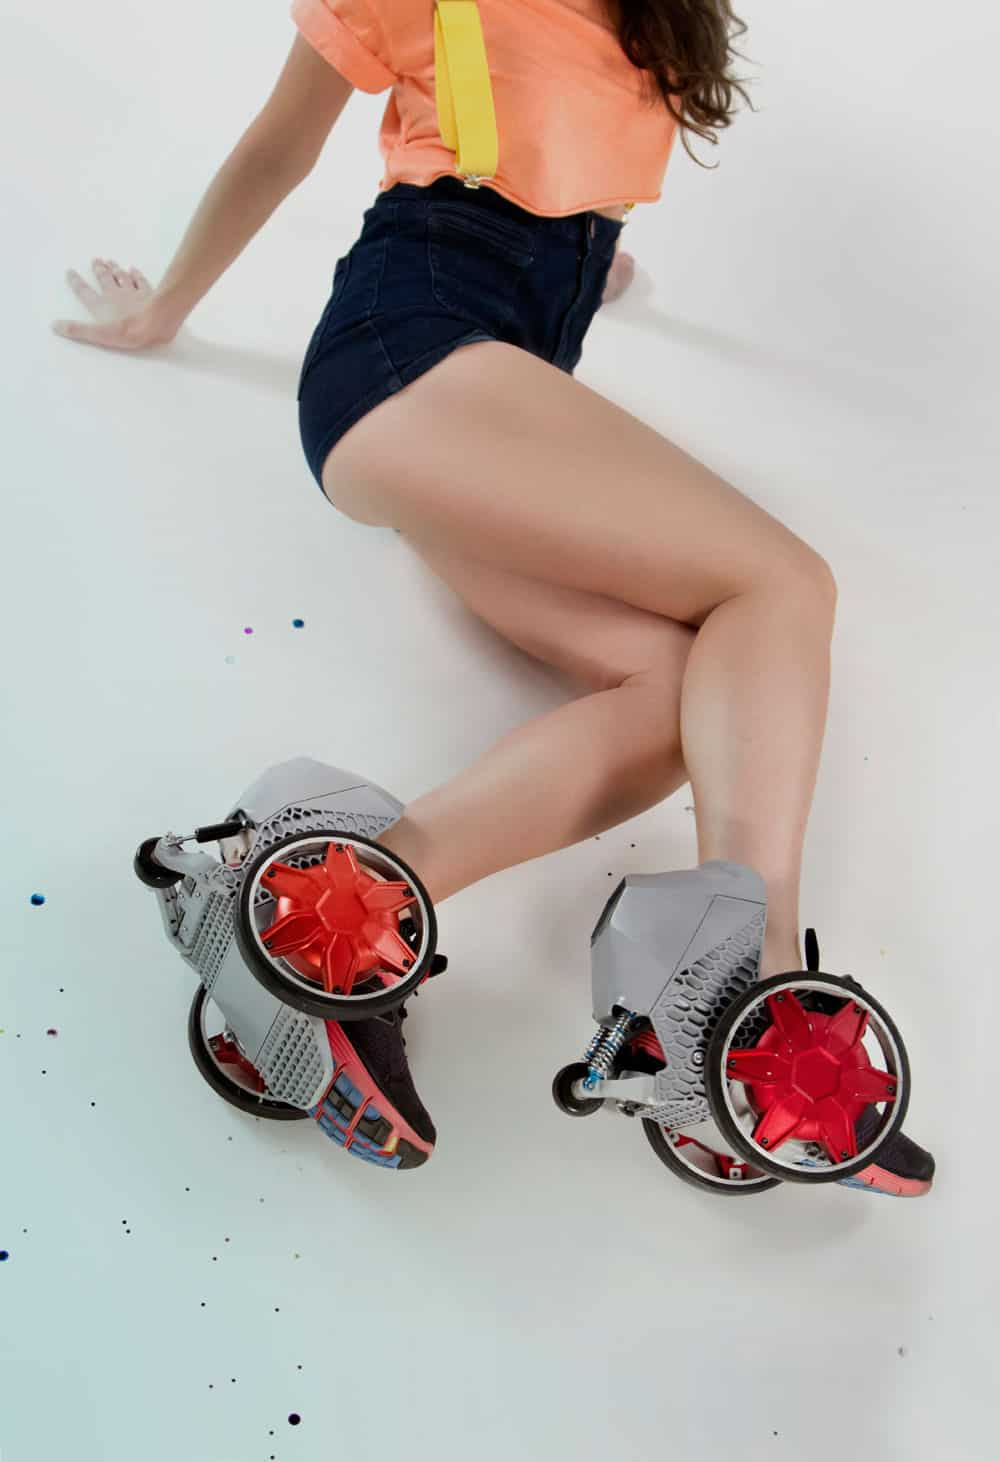 Acton-Rocketskates-Electric-Skates-Cool-Thing-to-Buy-Her-Sporty